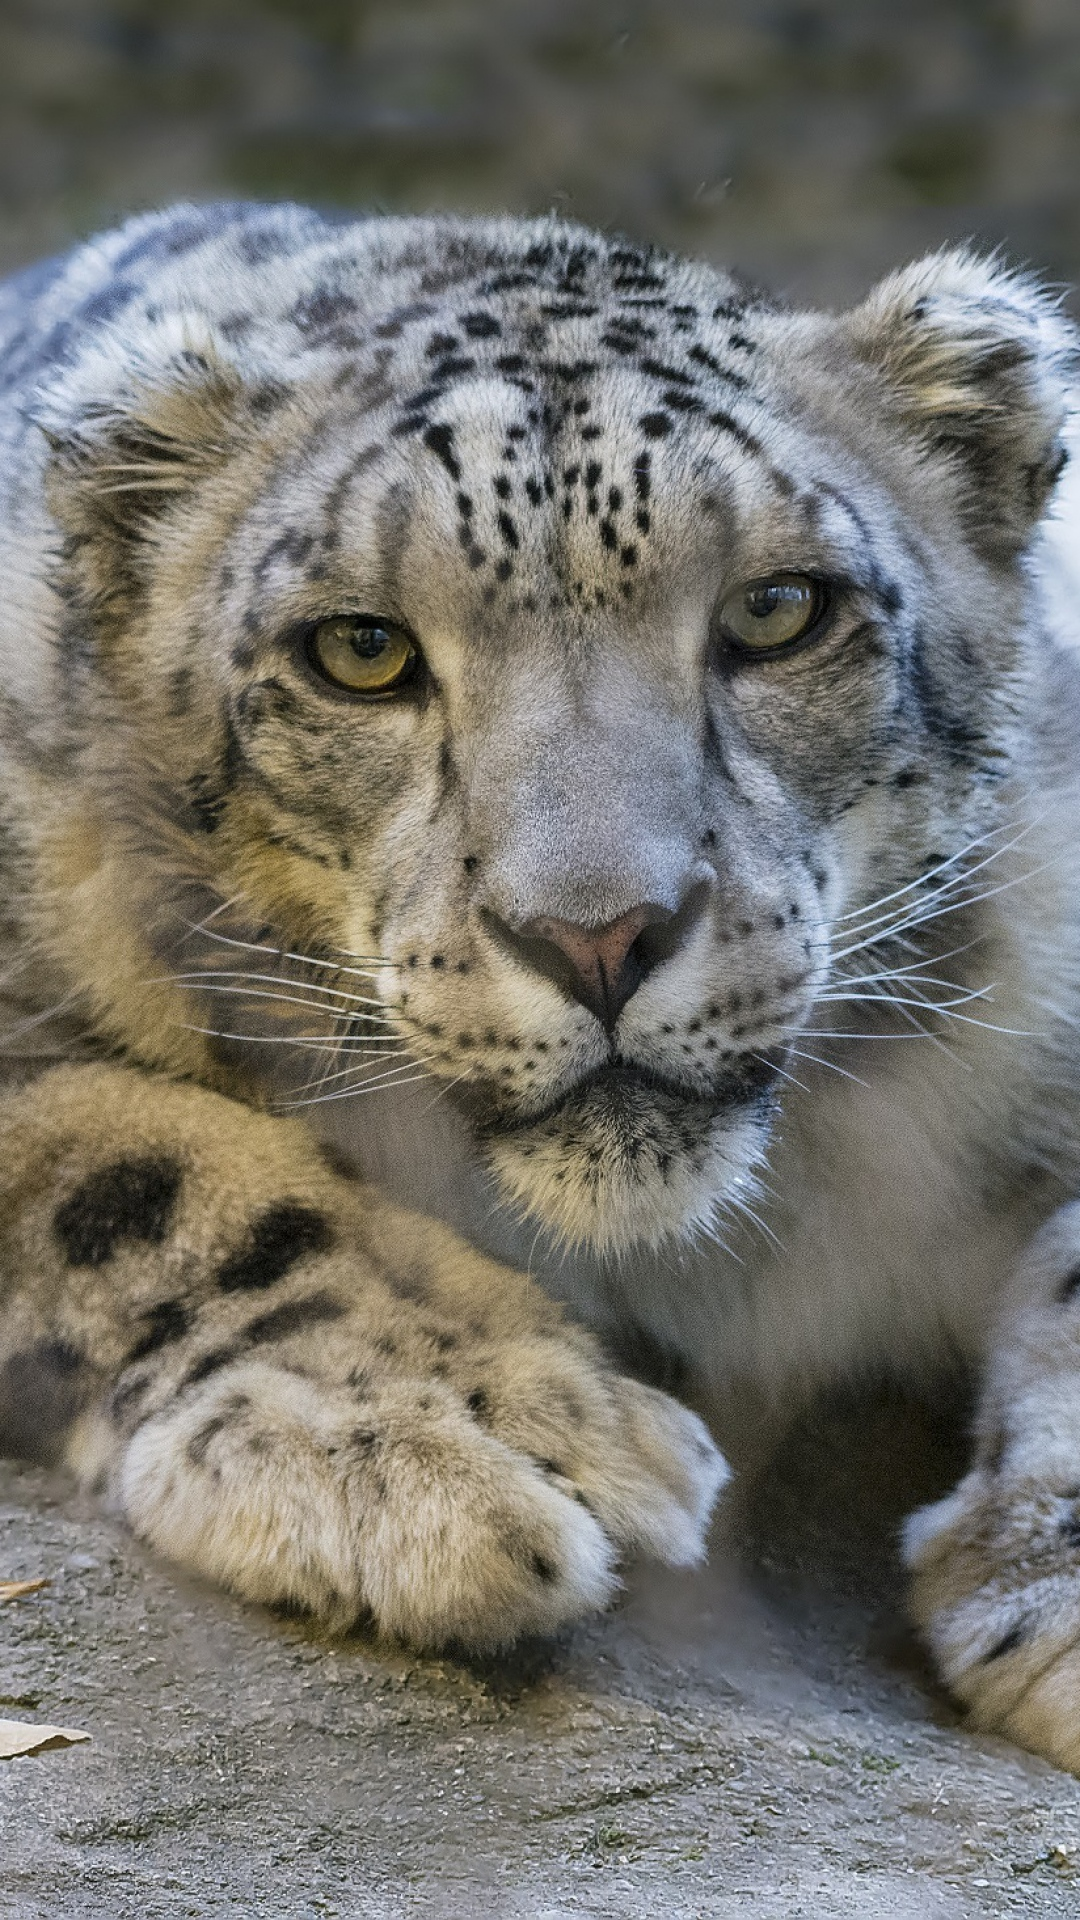 Snow Leopard 1887558 Hd Wallpaper Backgrounds Download